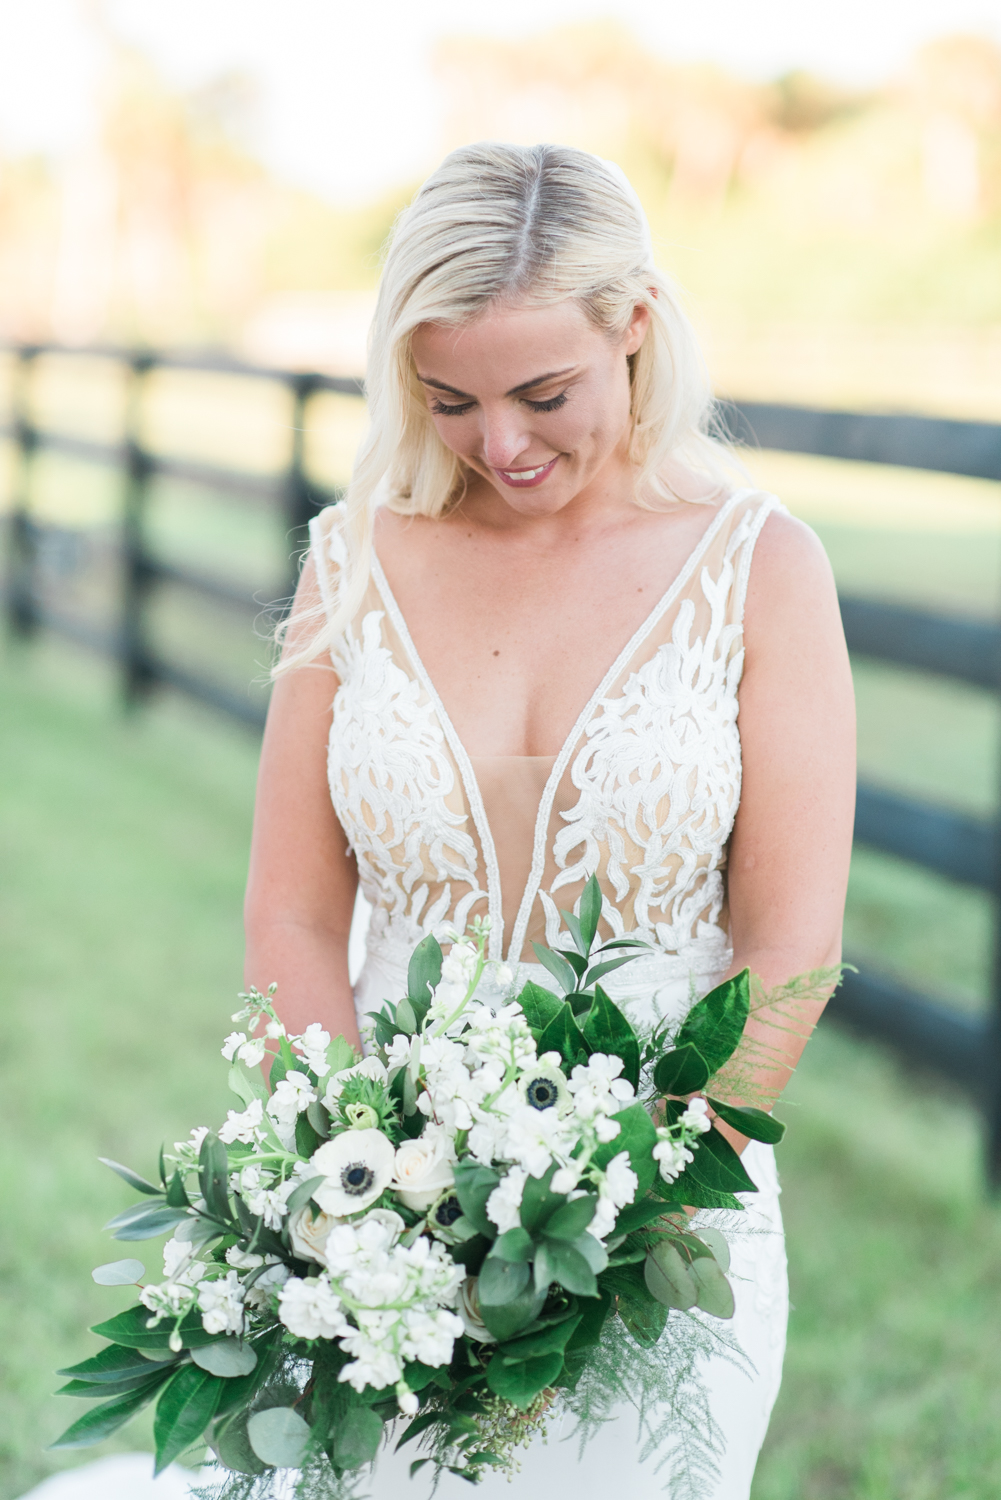 sterling stables wedding rania marie photography-16.jpg